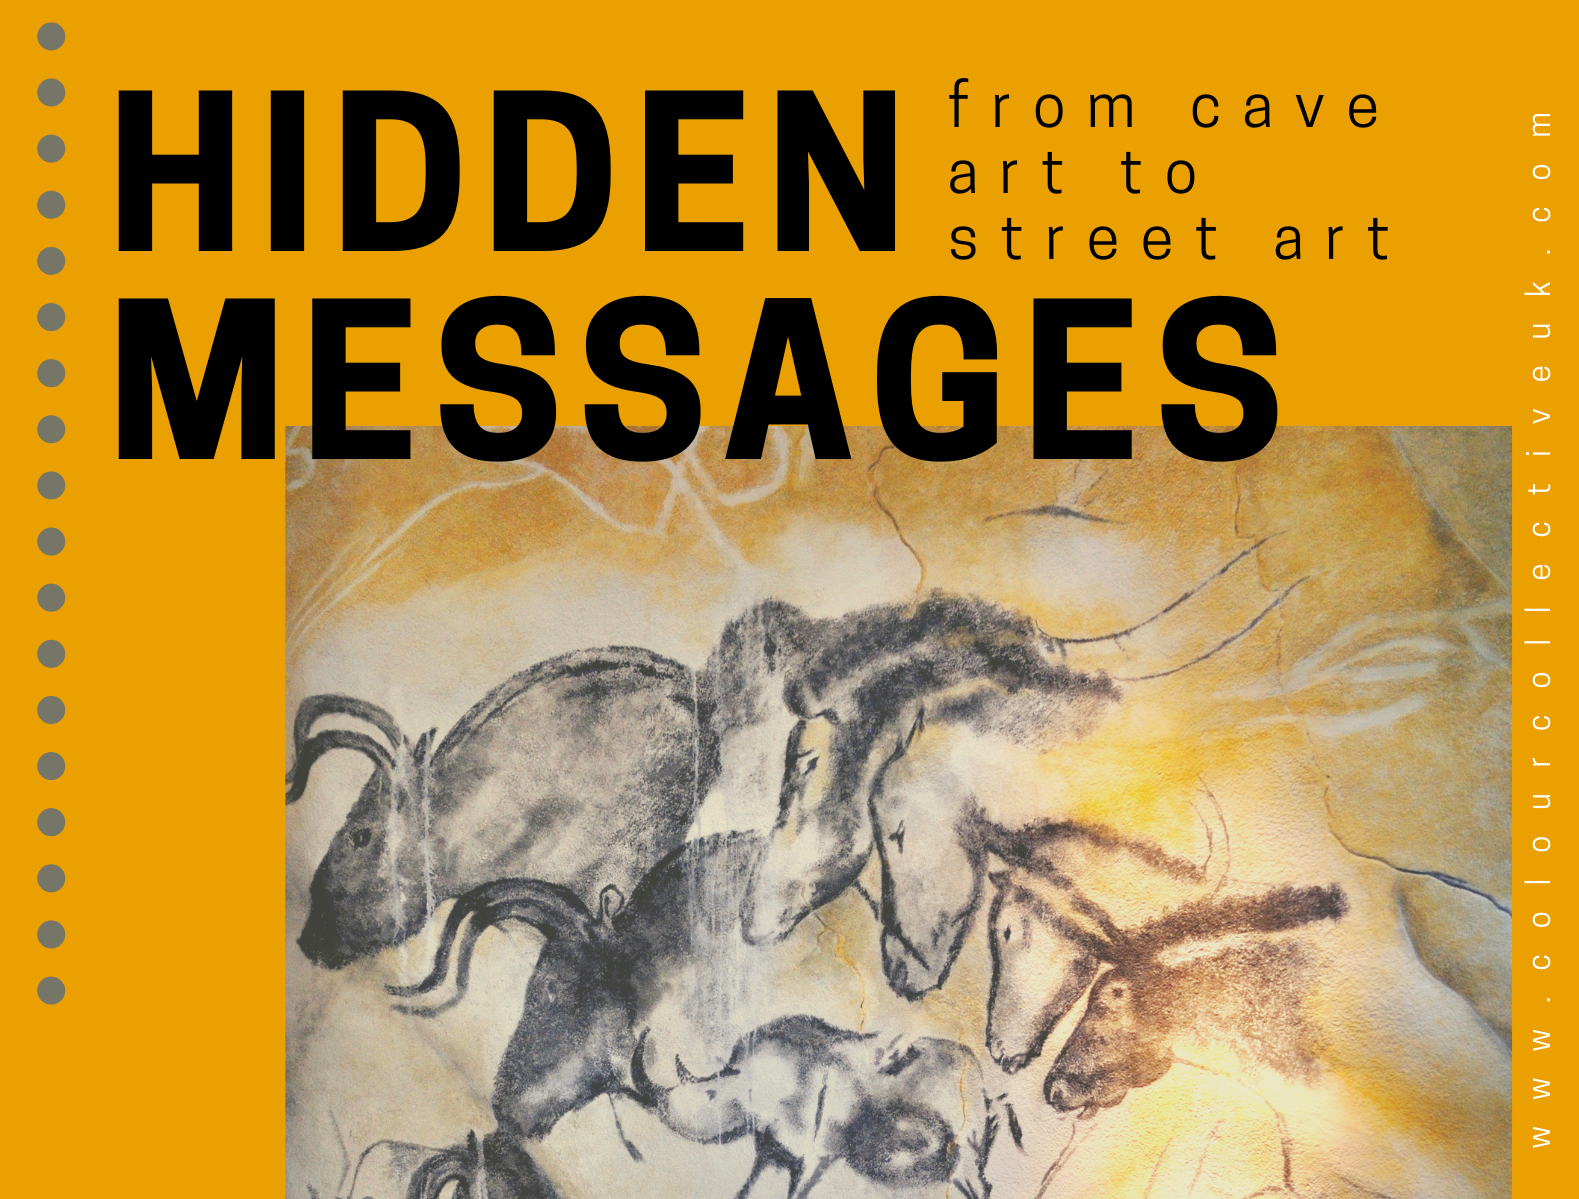 Hidden messages from cave art to street art event poster